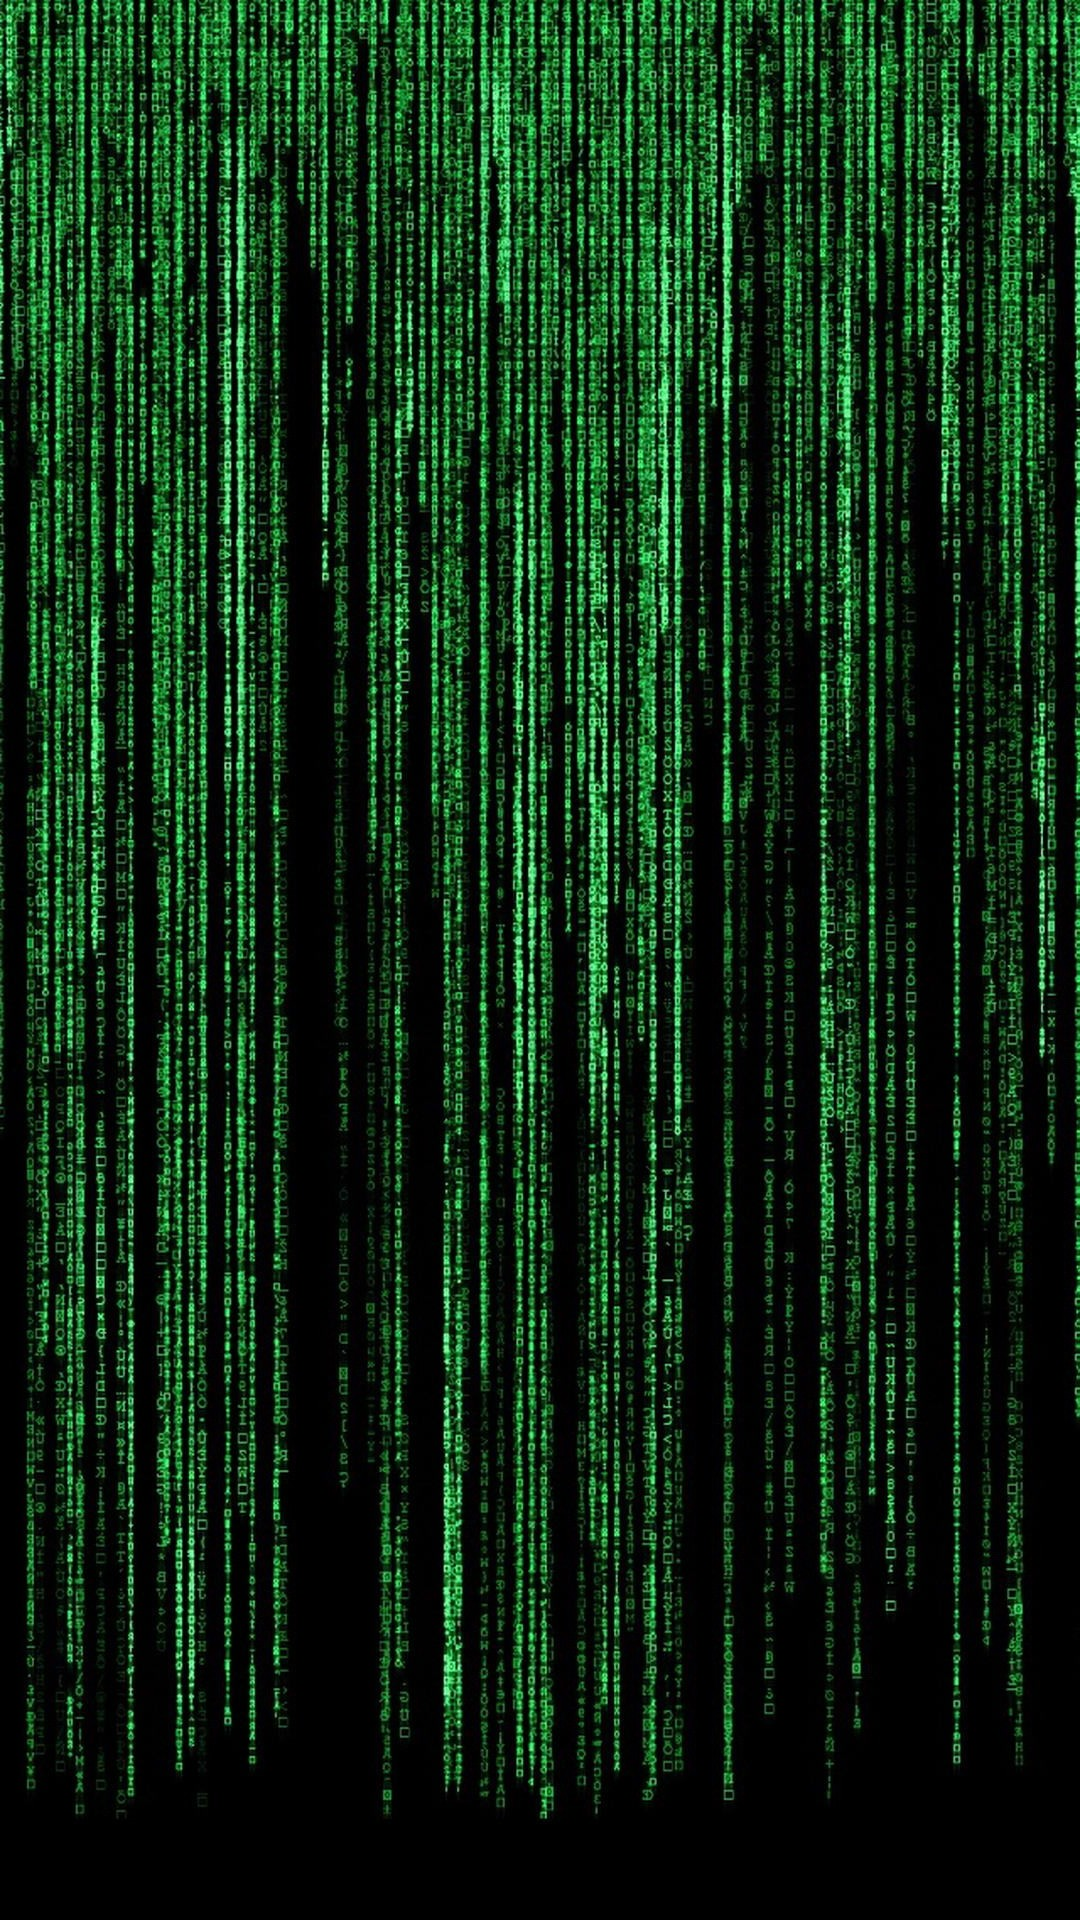 3d Moving Wallpaper For Windows 8 The Matrix Movies Code Wallpapers Hd Desktop And